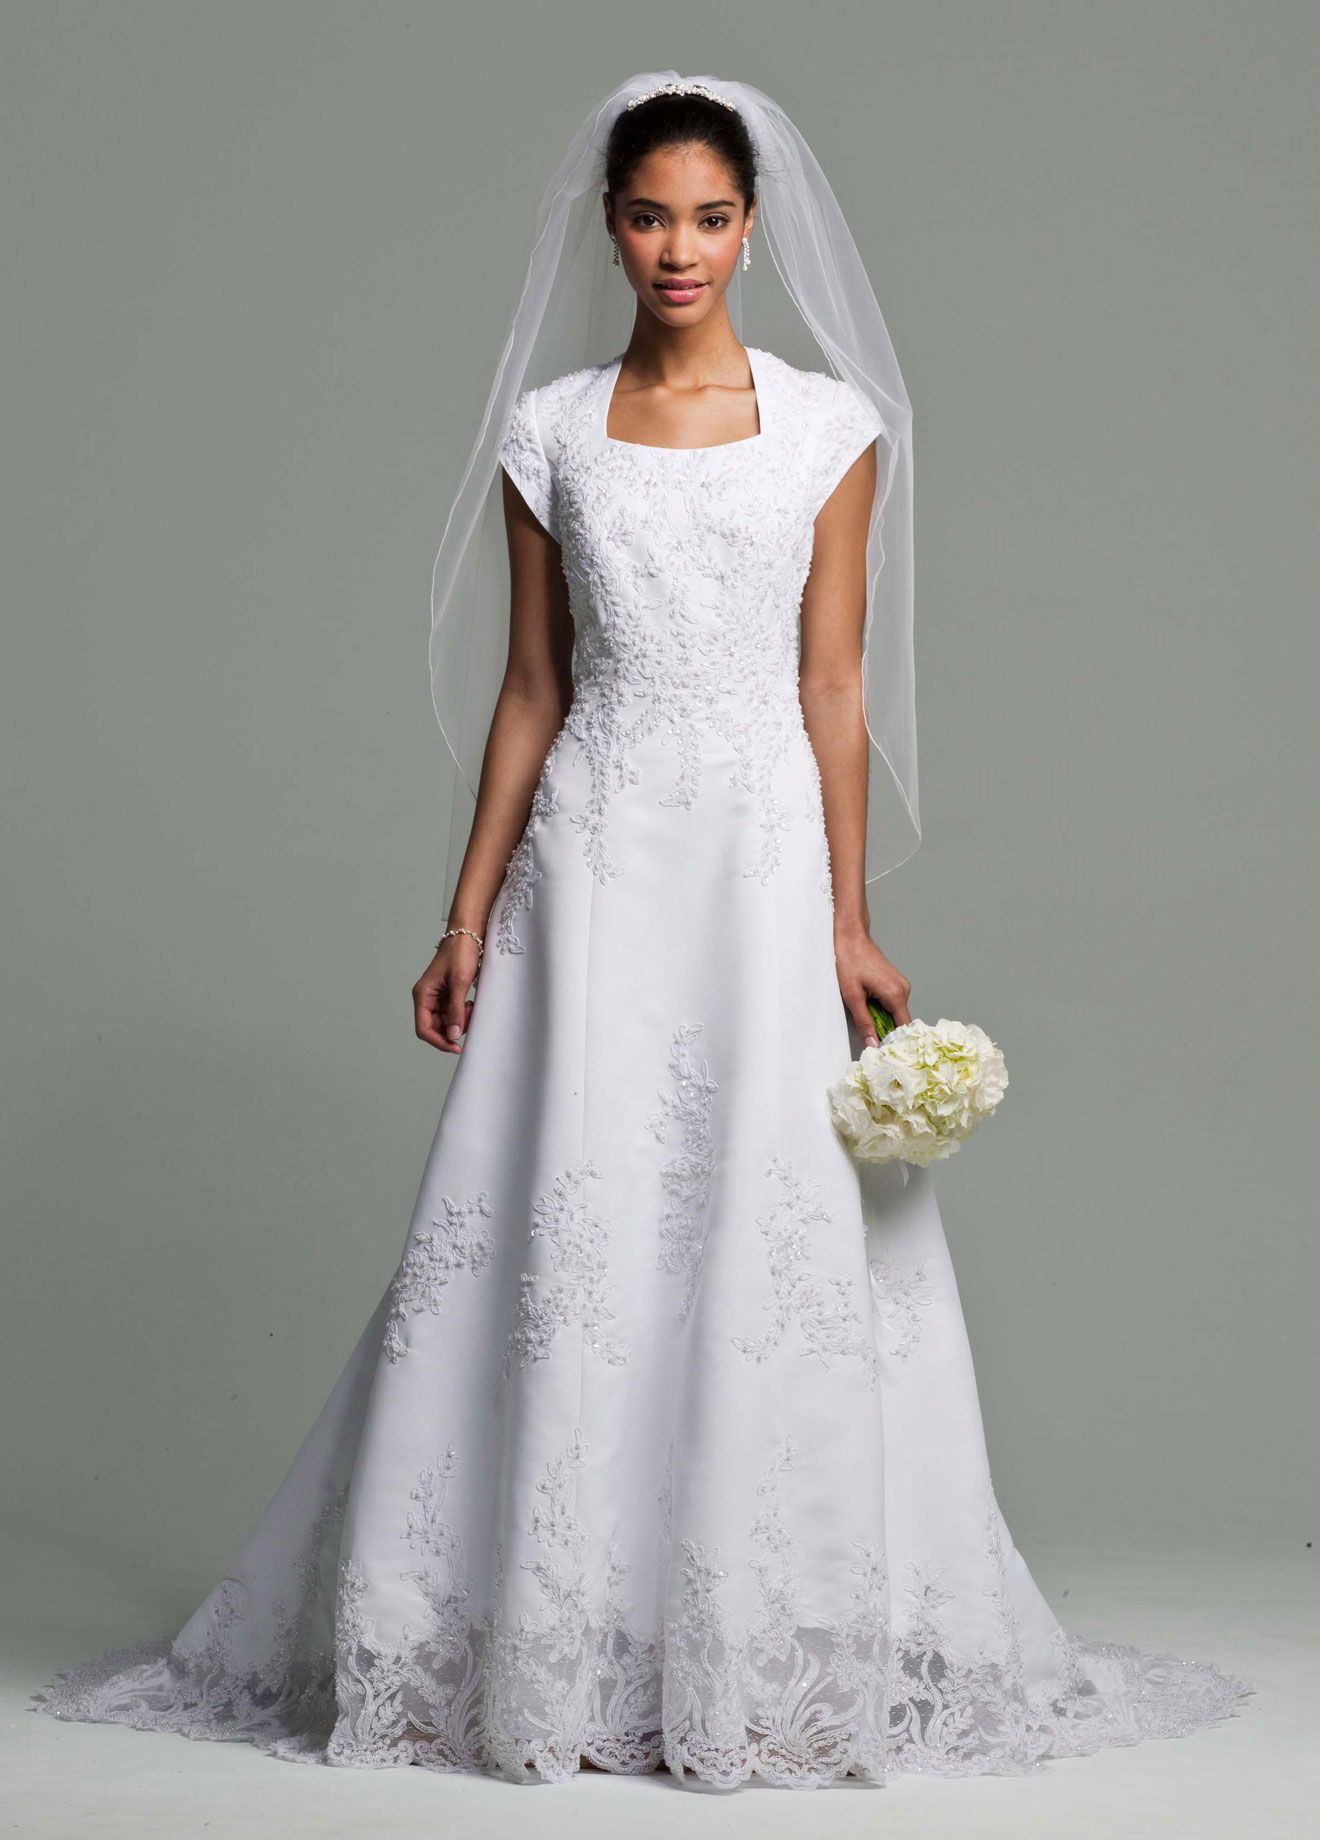 used wedding dresses under dollars cheap used wedding dresses Cheap mother of the bride dresses can be stylish if the material and fabric used is exotic and original Choosing the right authentic fabric can be a